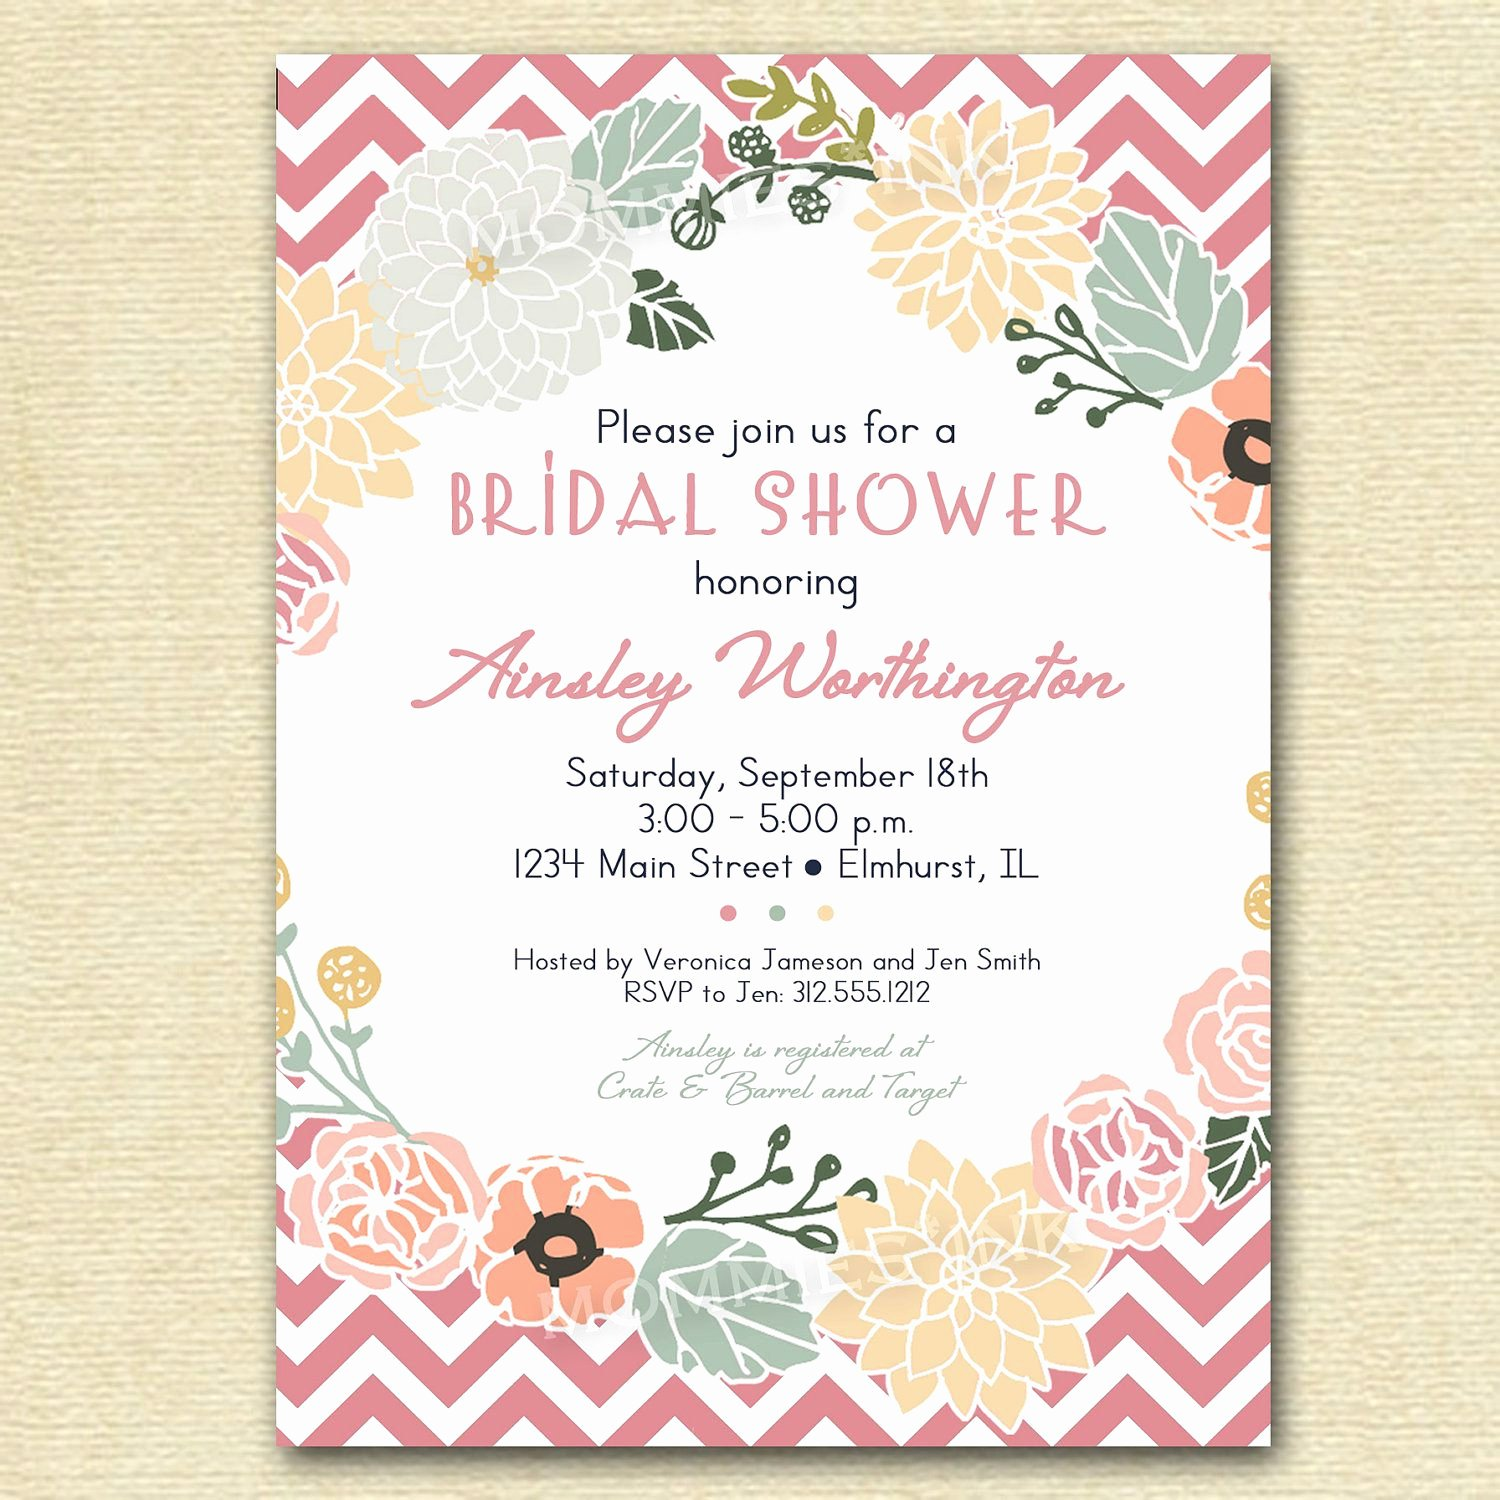 Event Invitation Graduation Invitations New Invitation